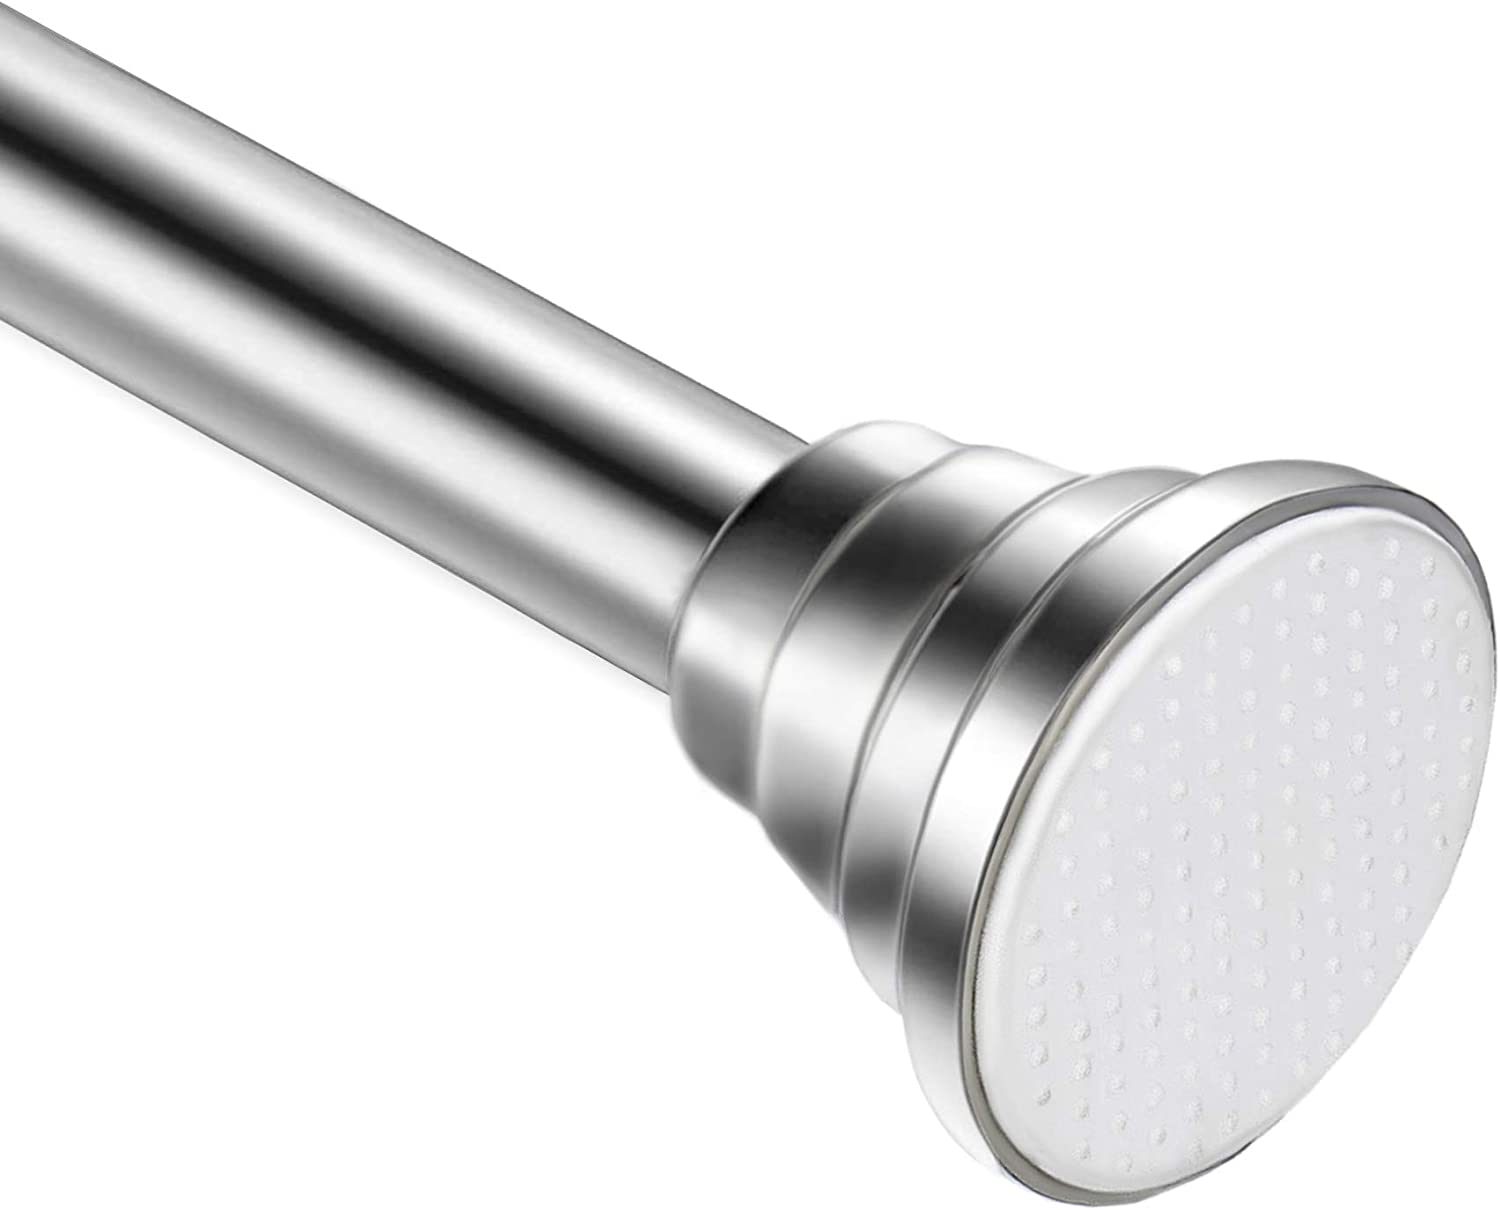 Shower Curtain Rod Outstanding 43-82 inch Stainless Japan Maker New Steel Adjustable Spring